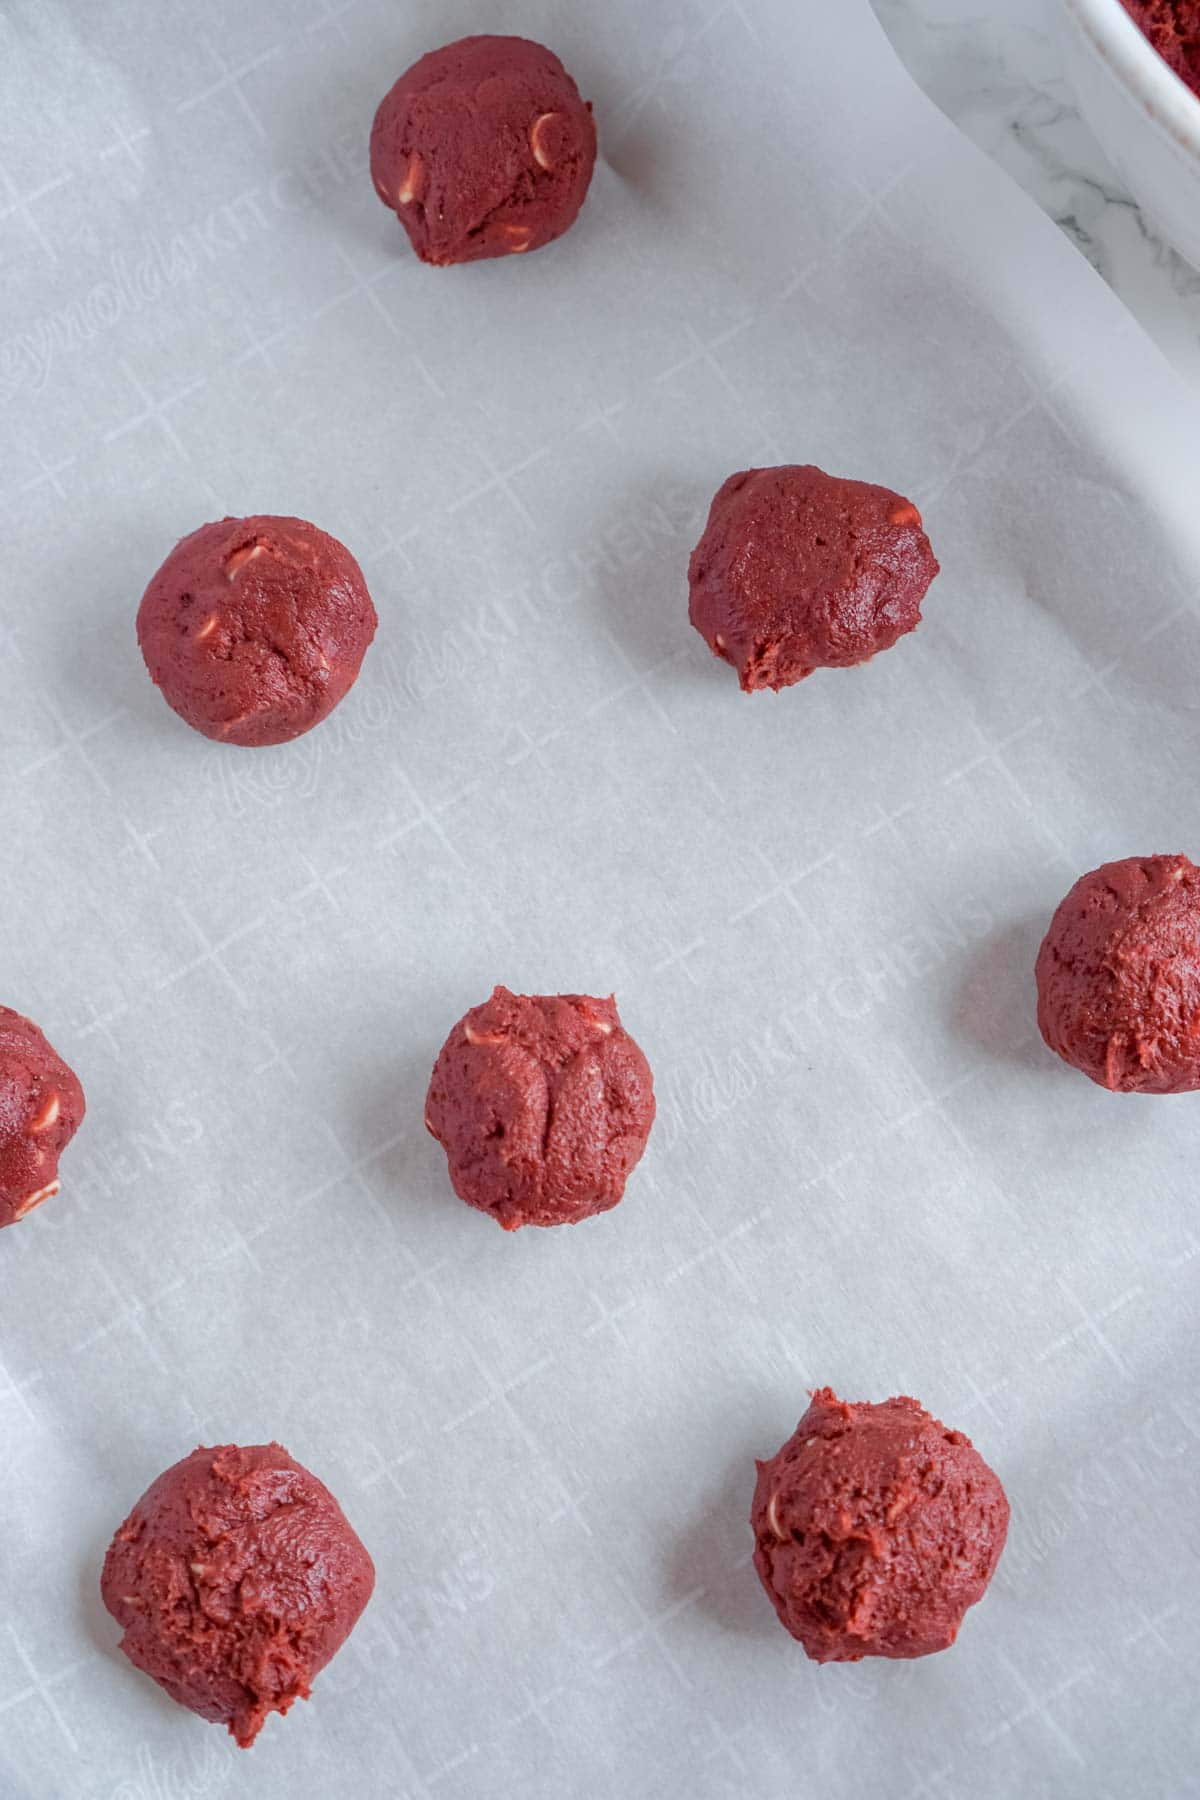 Red velvet cookie dough balls on a baking sheet